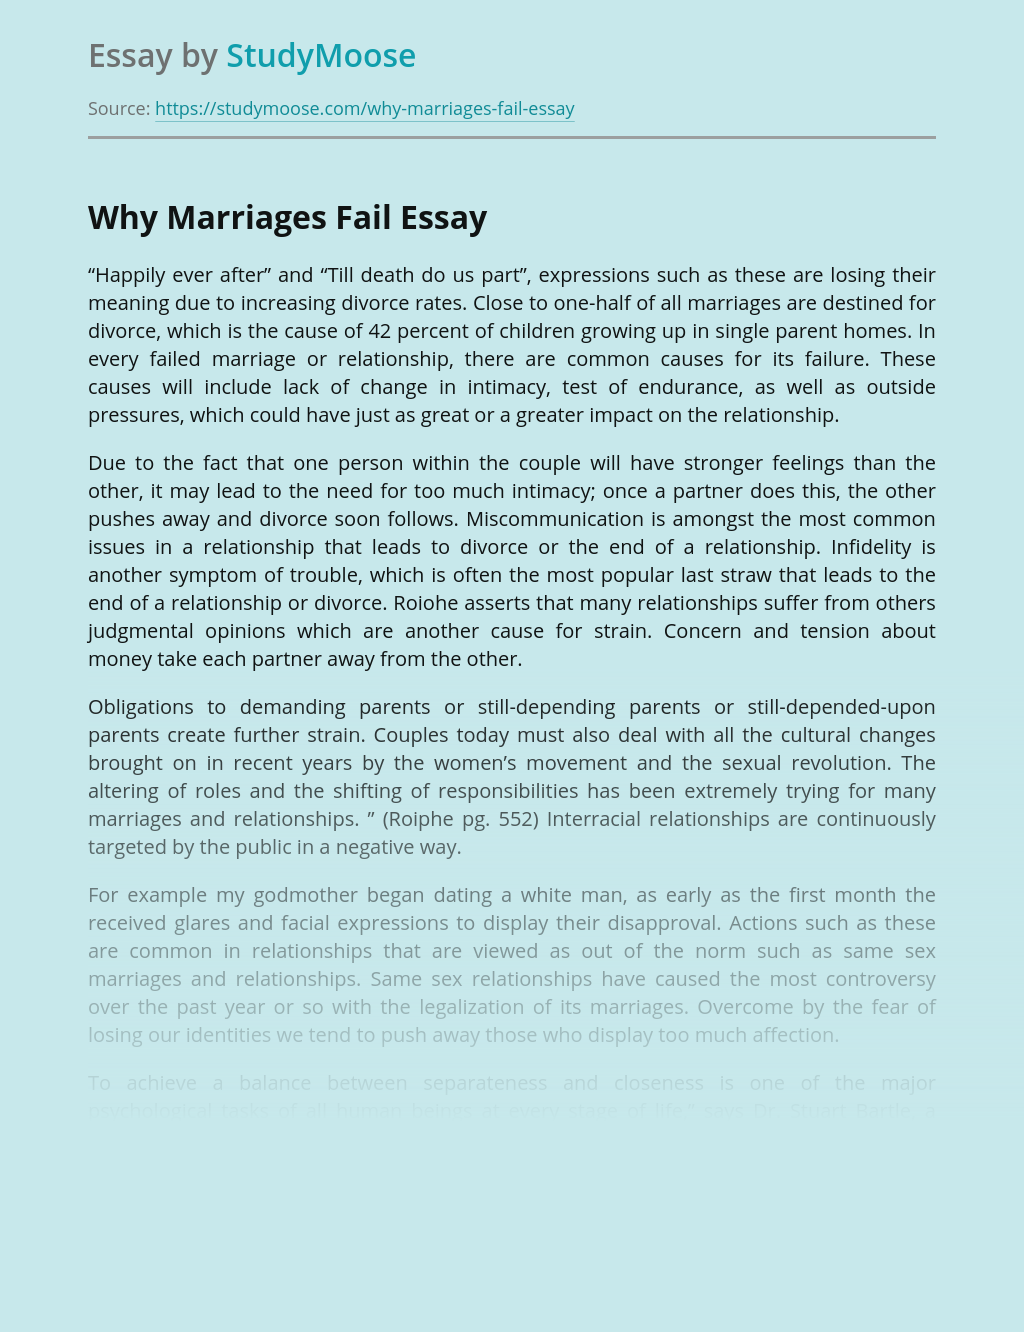 Why marriages fail | blogger.com